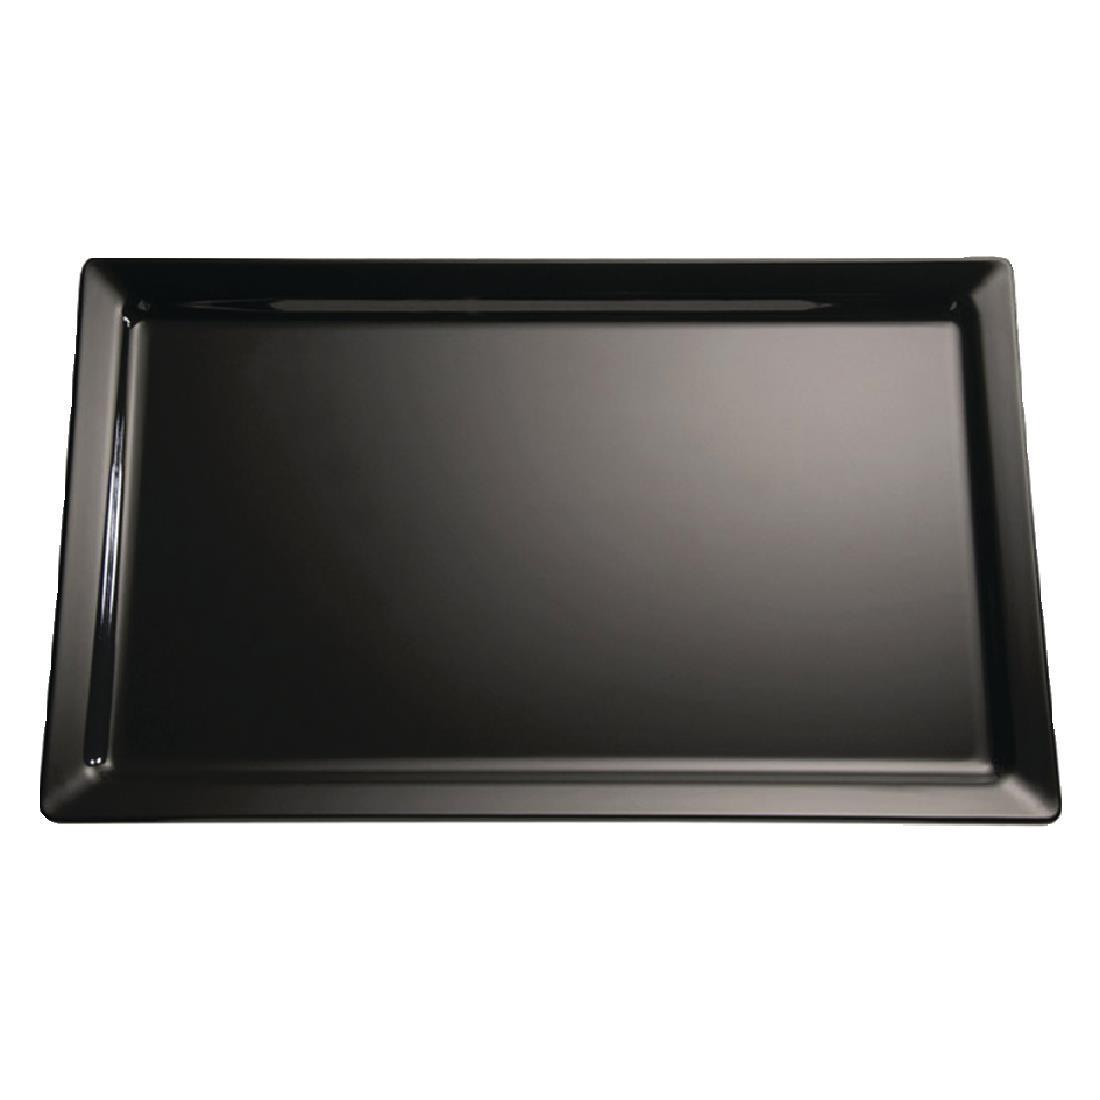 APS Pure Melamine Tray Black GN 1/1 - Each - GF121